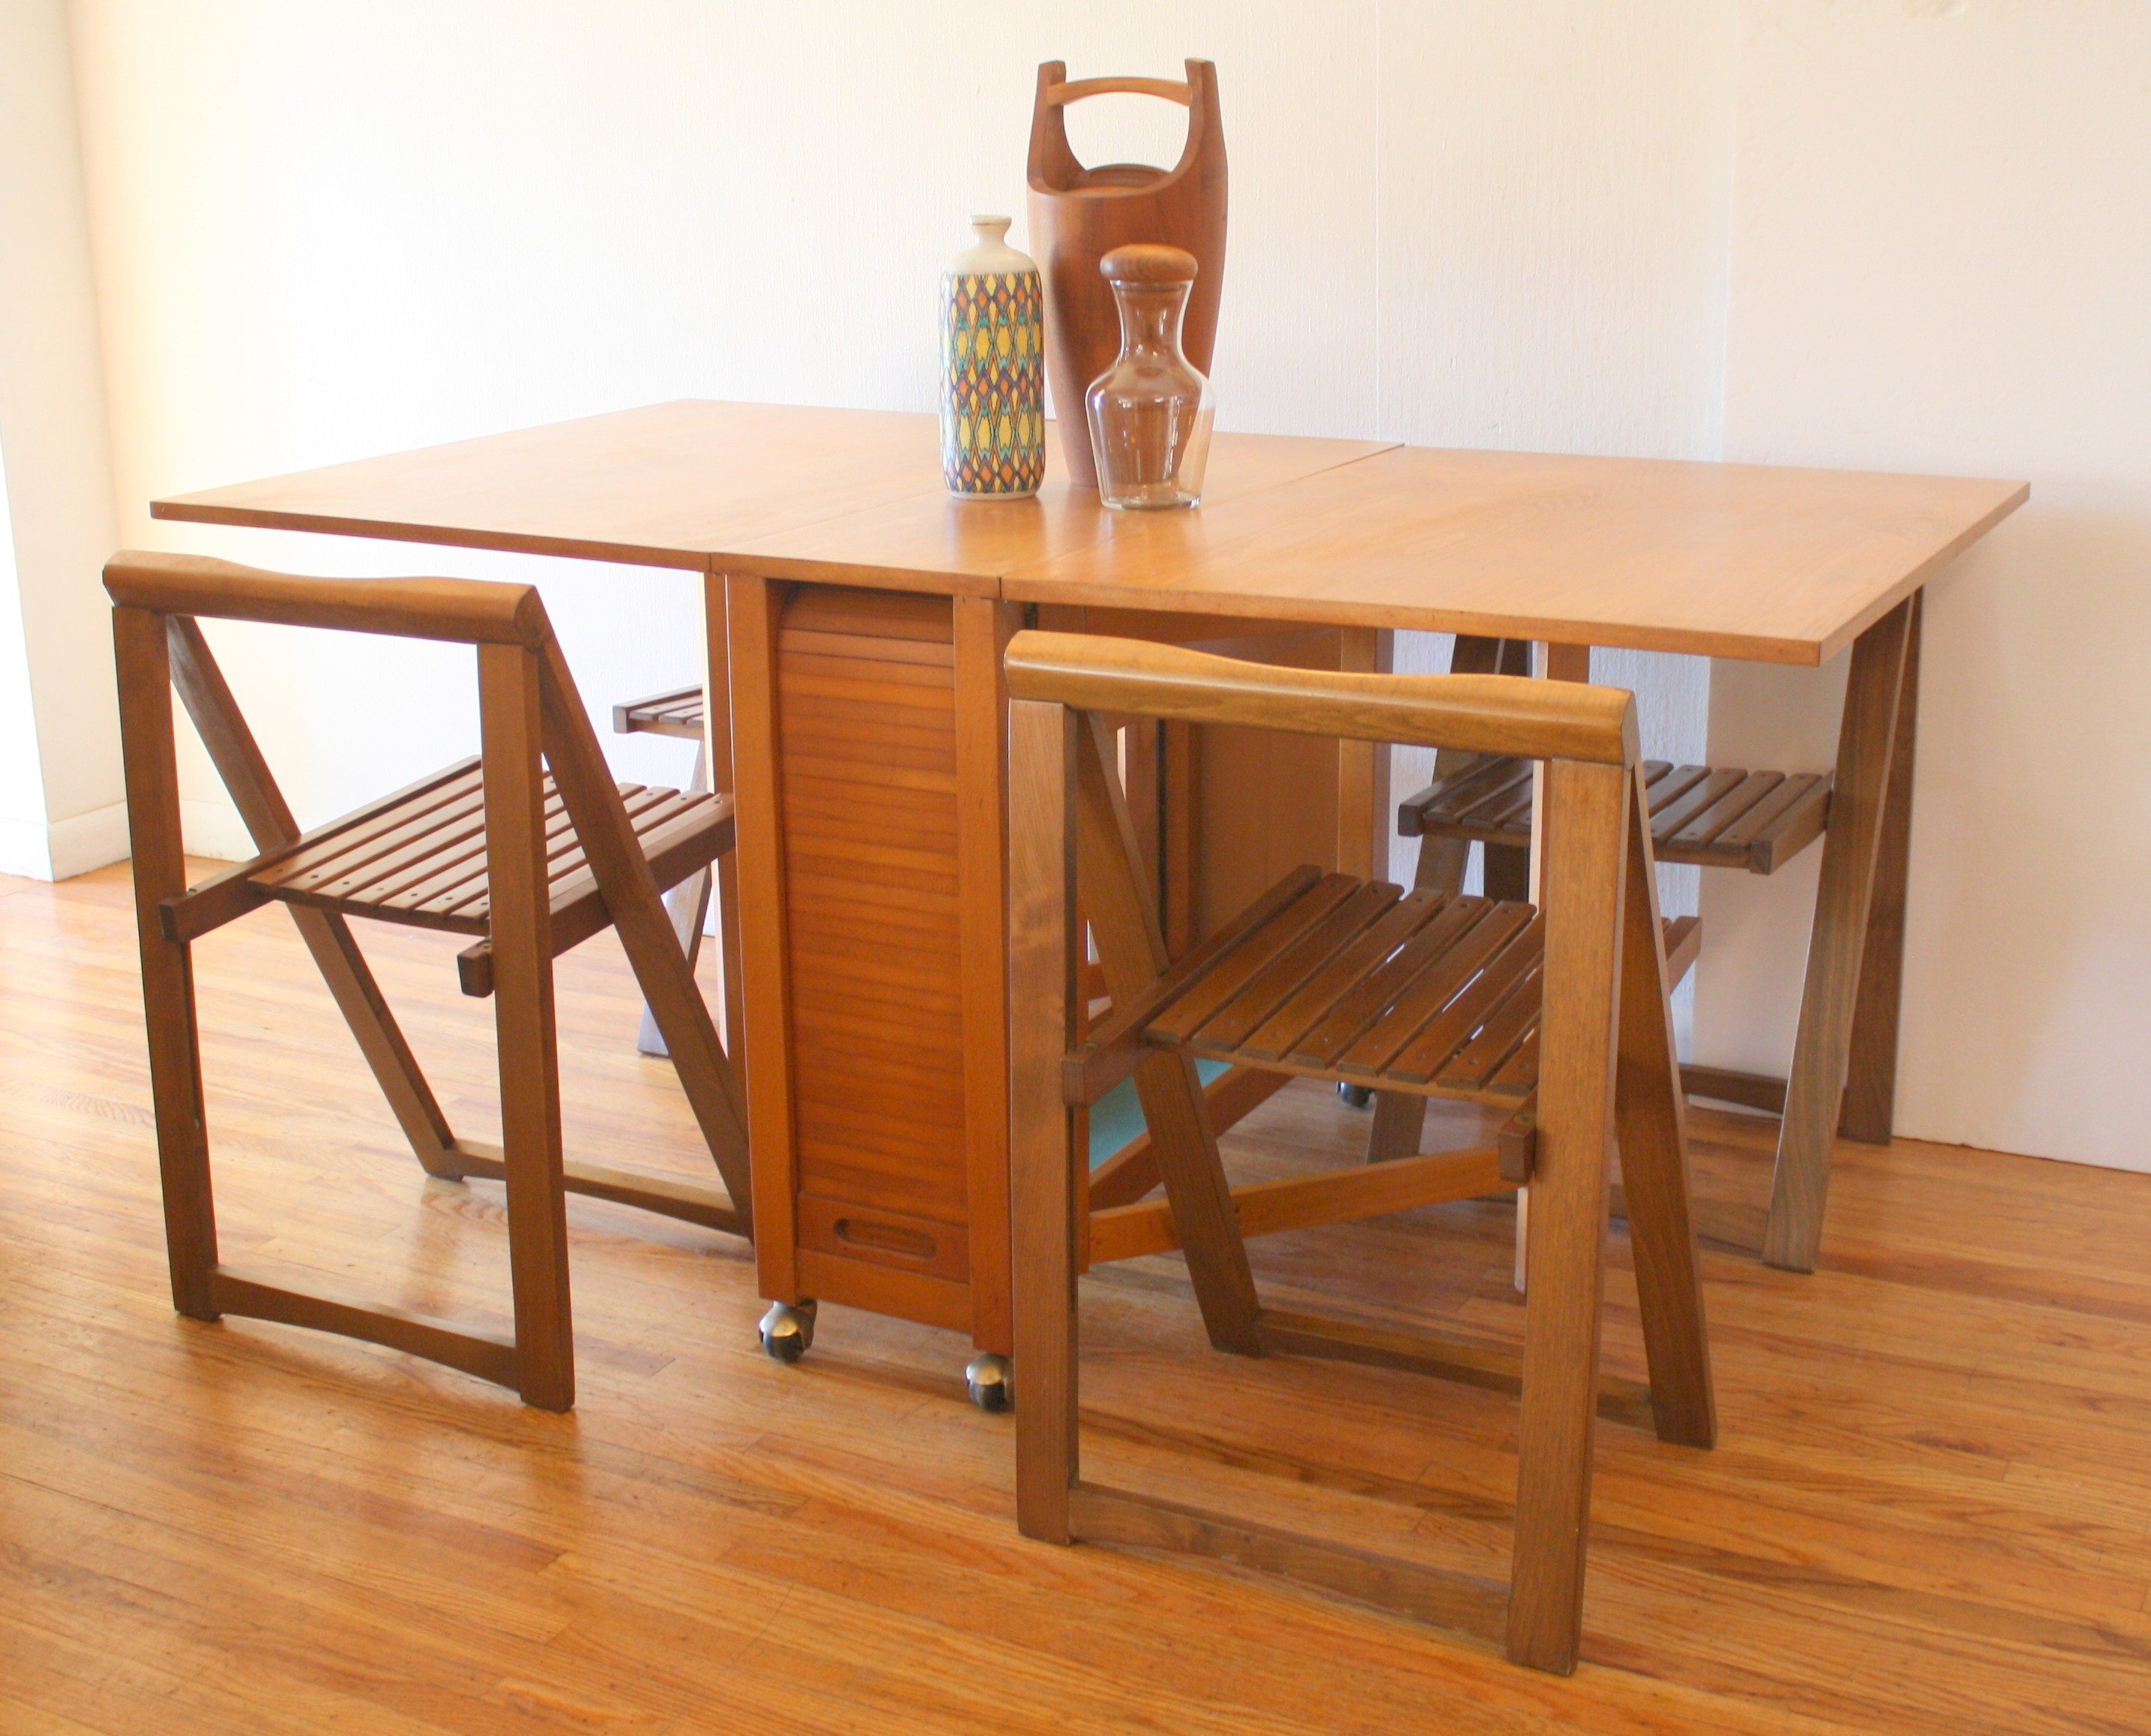 Vintage Herman Miller Chairs >> Mid Century Modern Gateleg Dining Table & Chairs | Picked Vintage